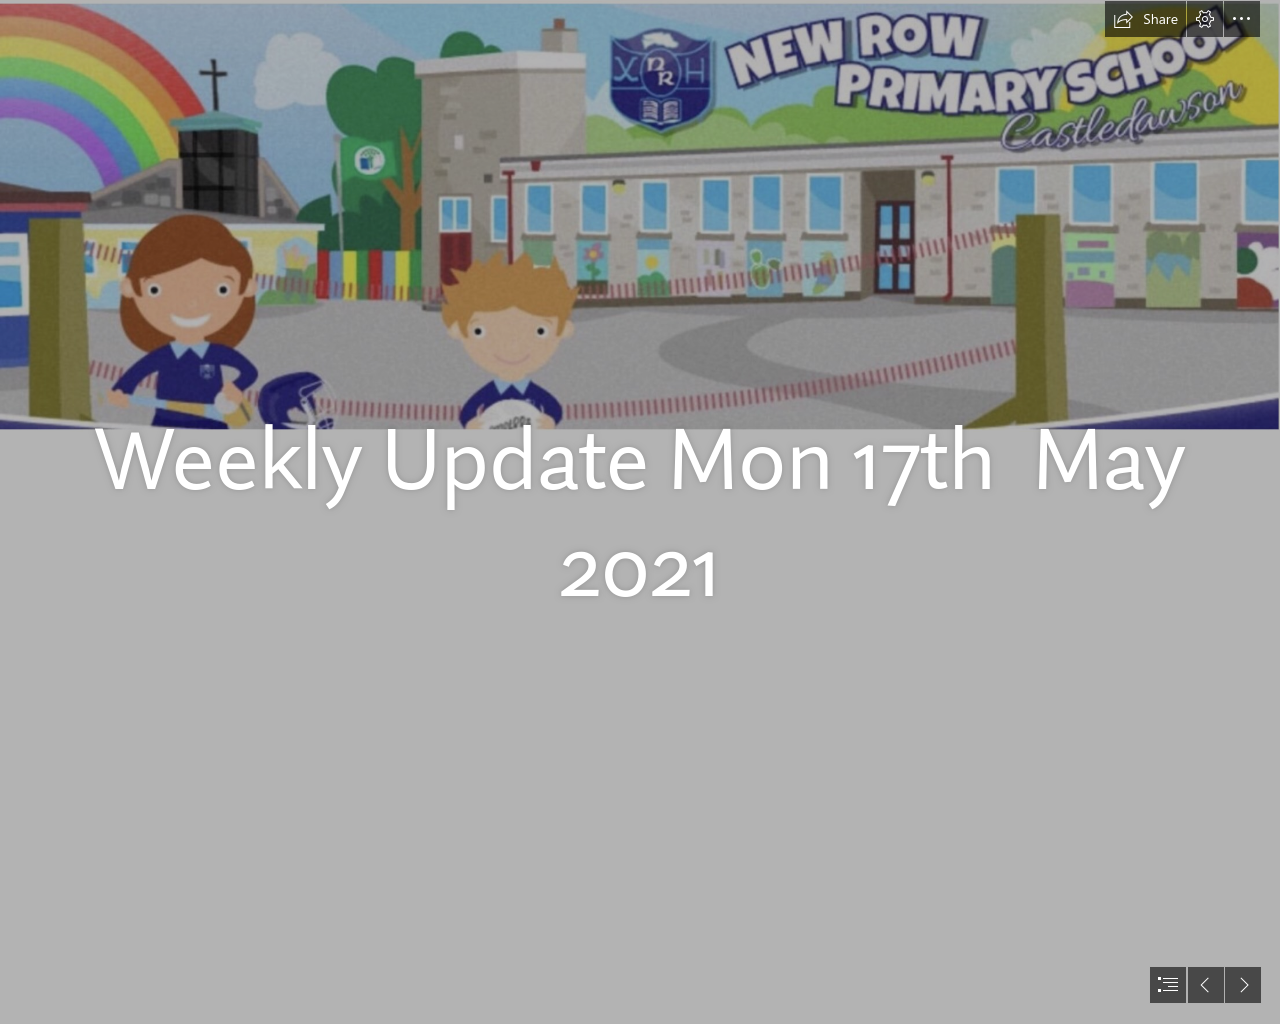 Weekly Update Monday 17th May 2021